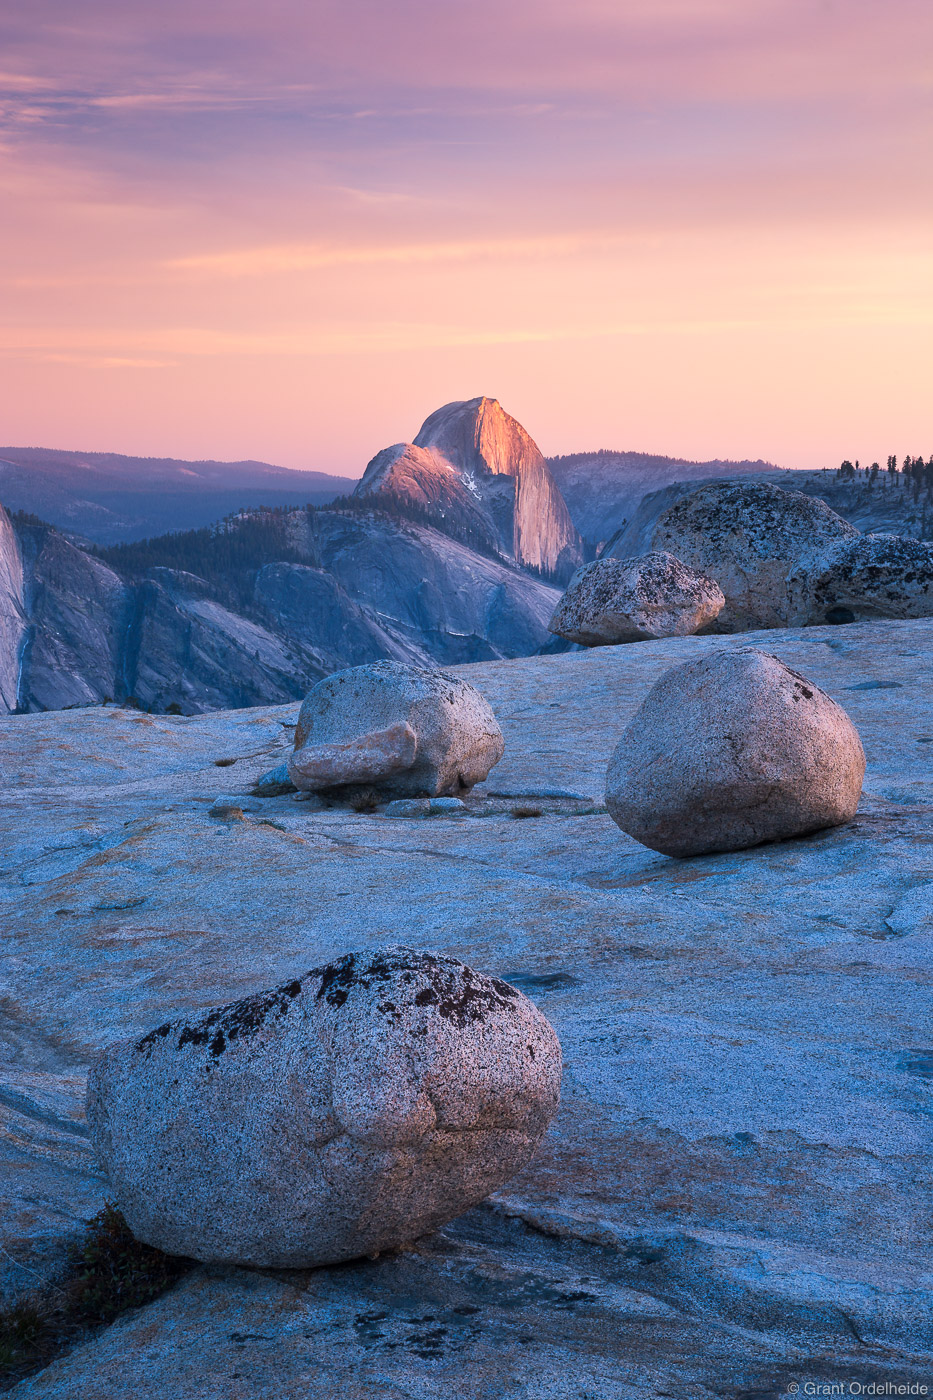 olmstead, sunset, half dome, glacier, erratics, yosemite, national park, california, usa, polished, granite,, photo